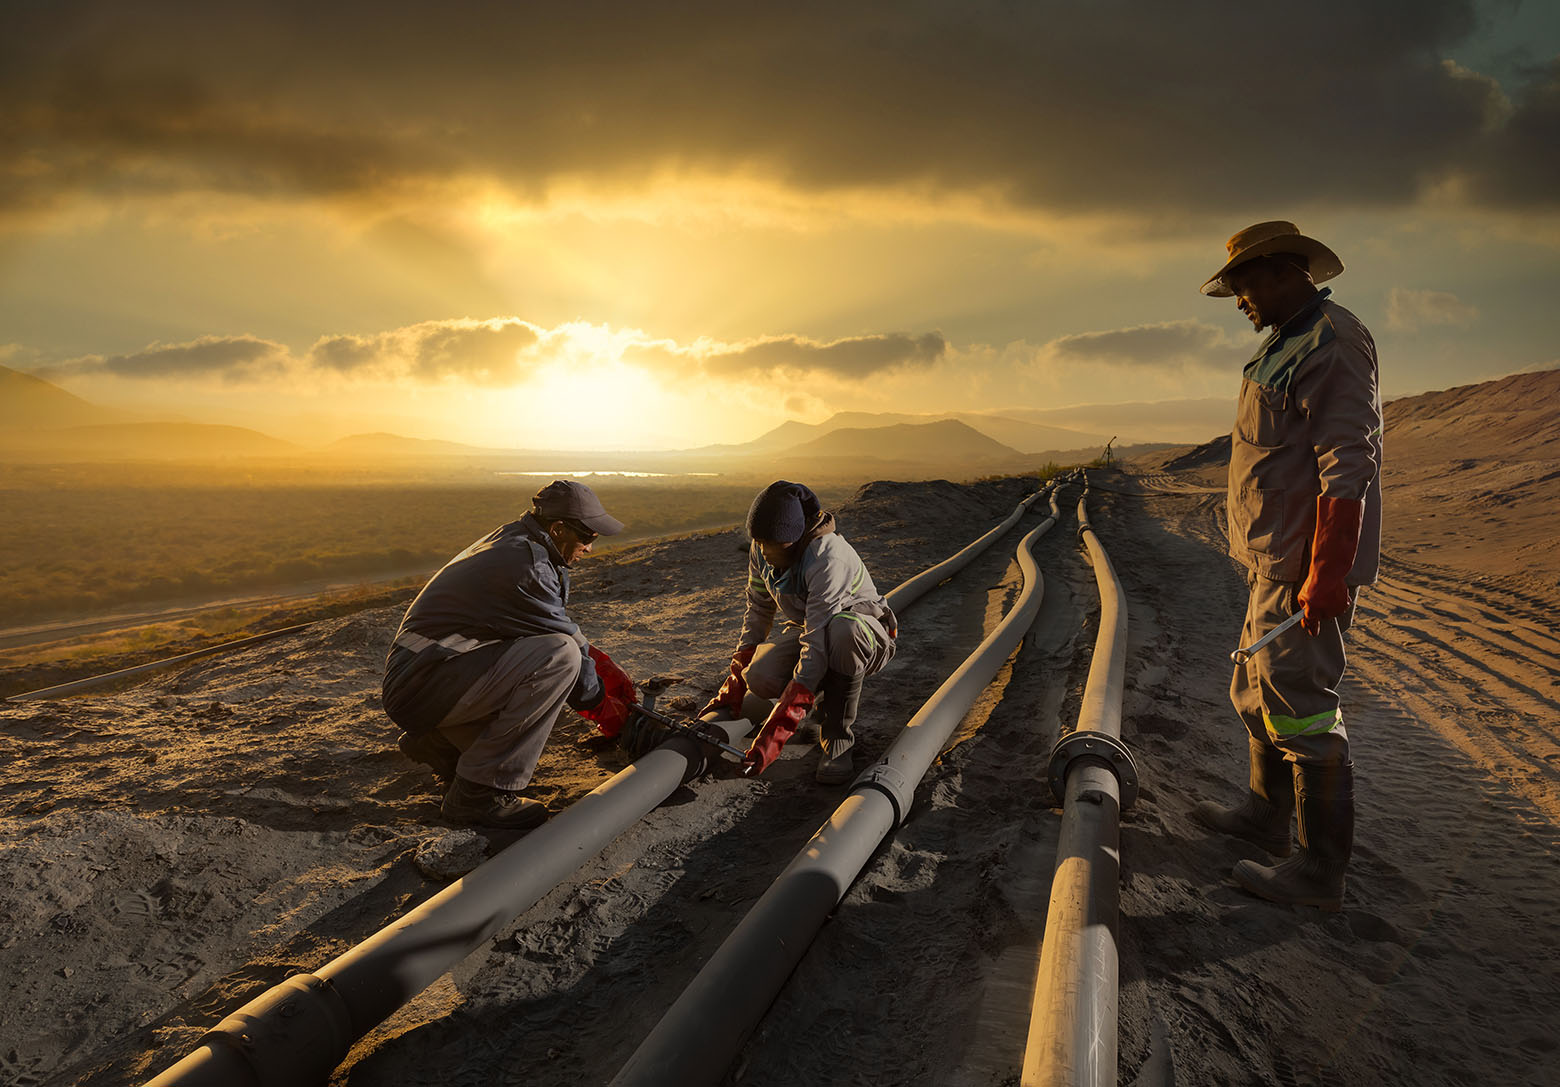 At work on pipework at sunrise on tailings dam